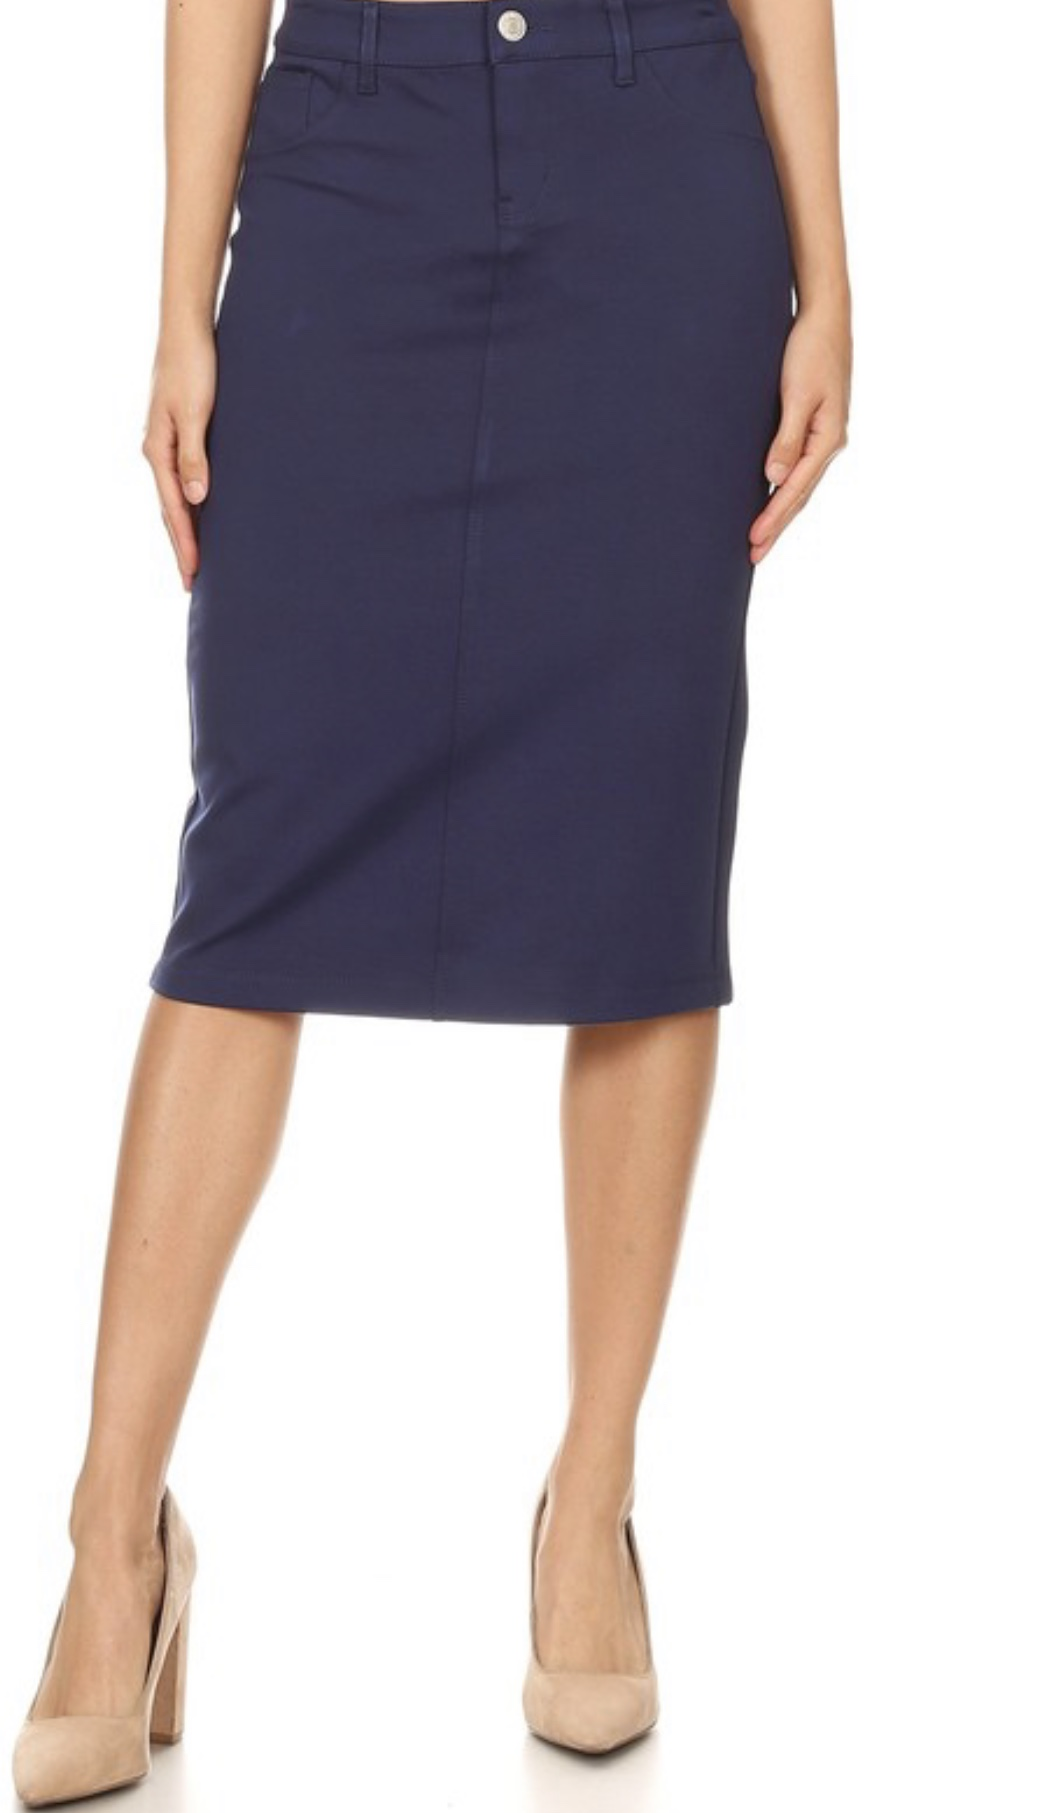 Navy twill stretch pencil skirt